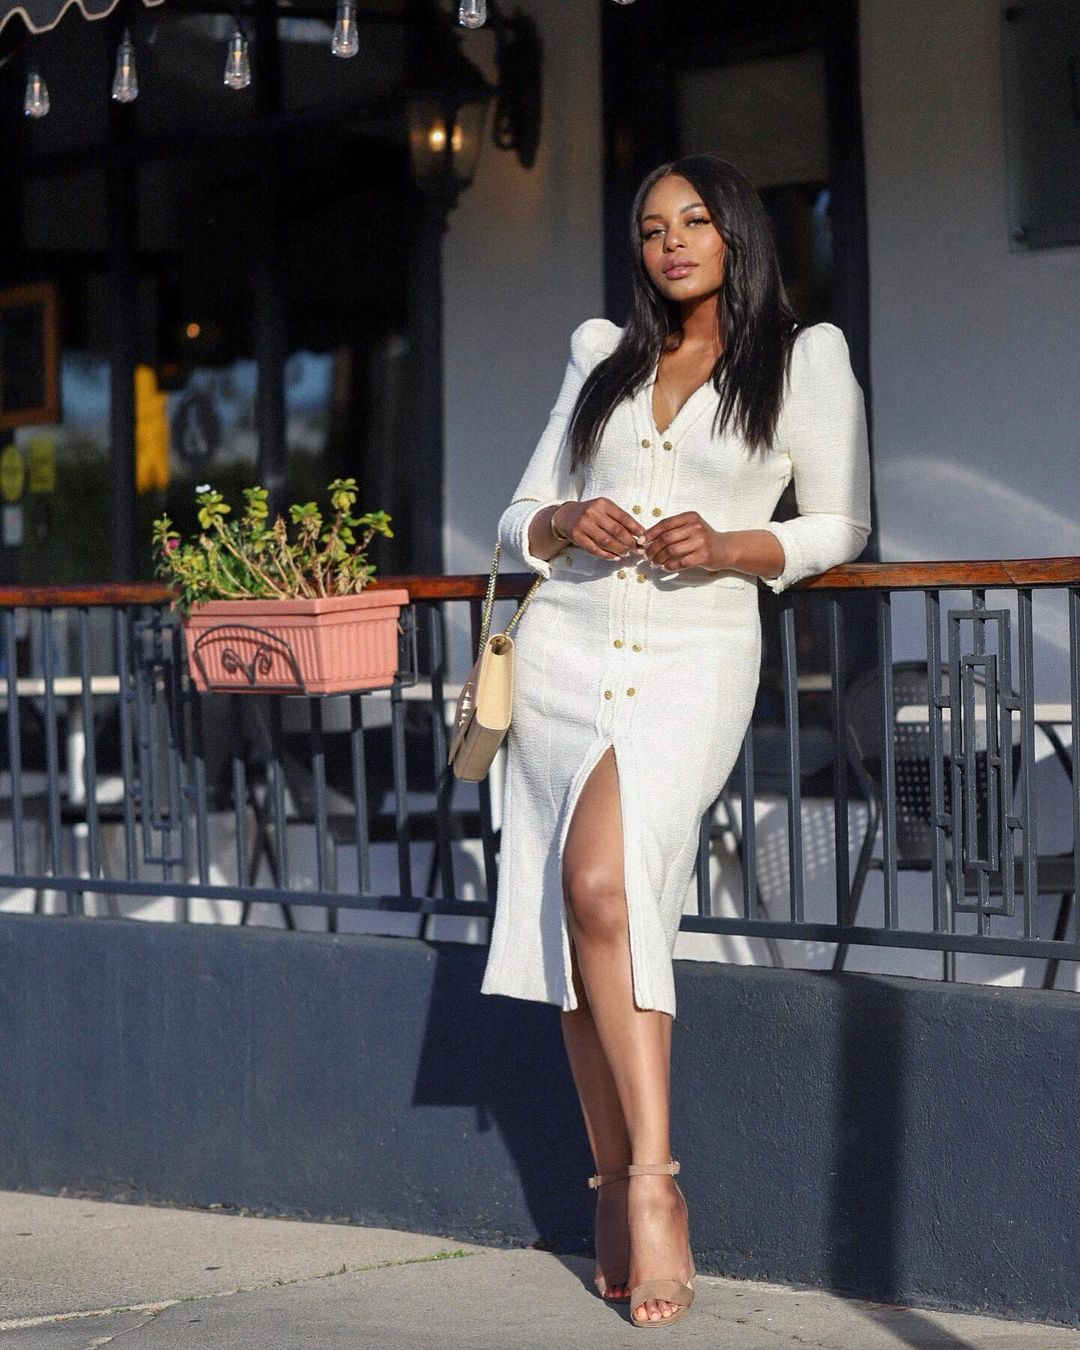 Kaye Bassey in white midi dress and heels outside of a restaurant